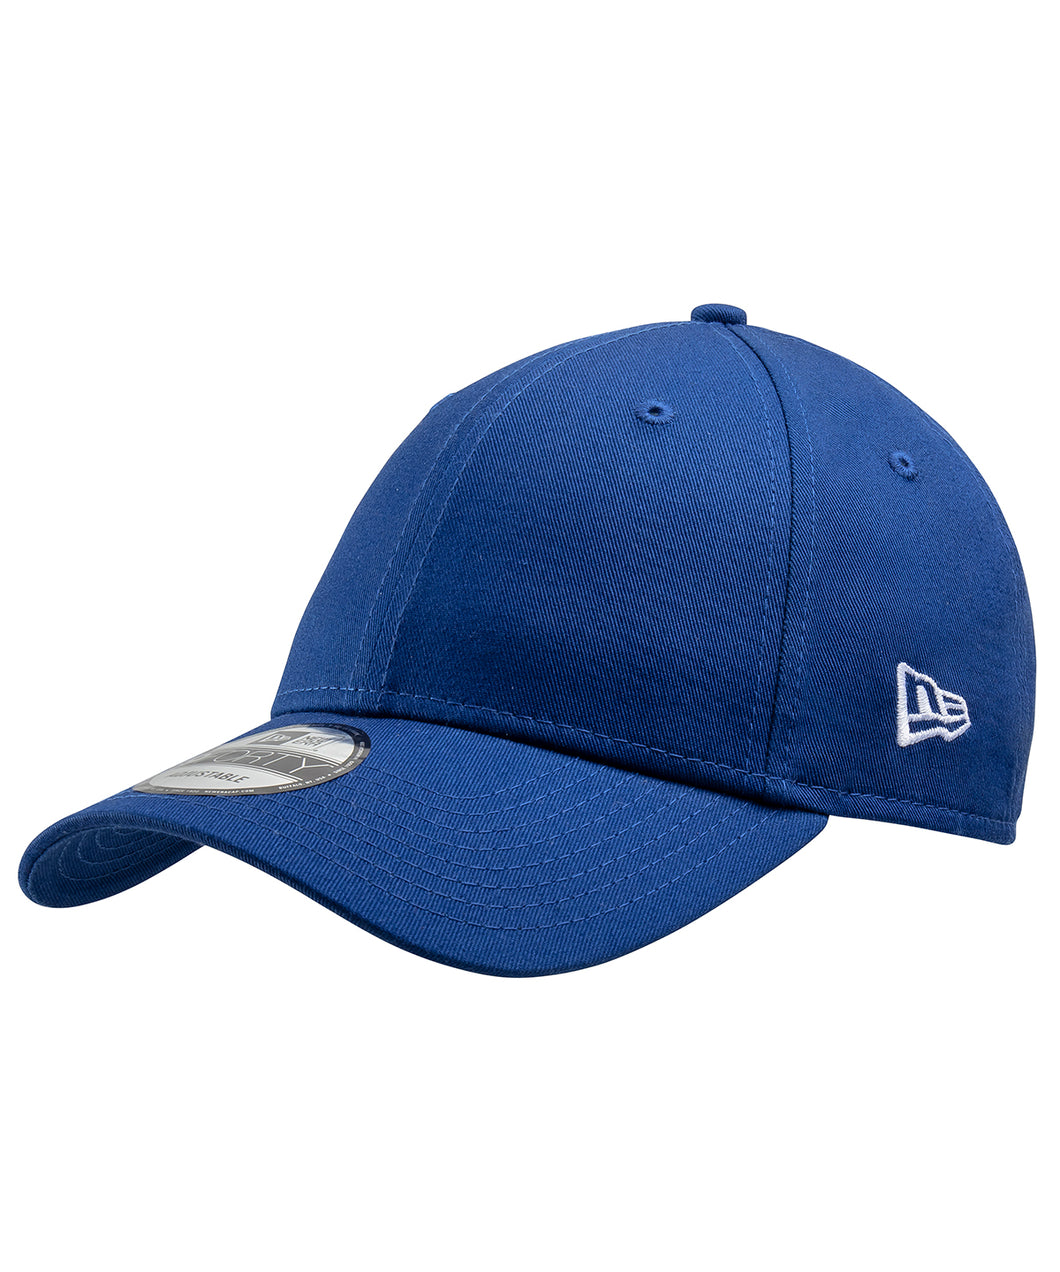 Casquette New Era 9Forty bleu royal eighteen clothing 18